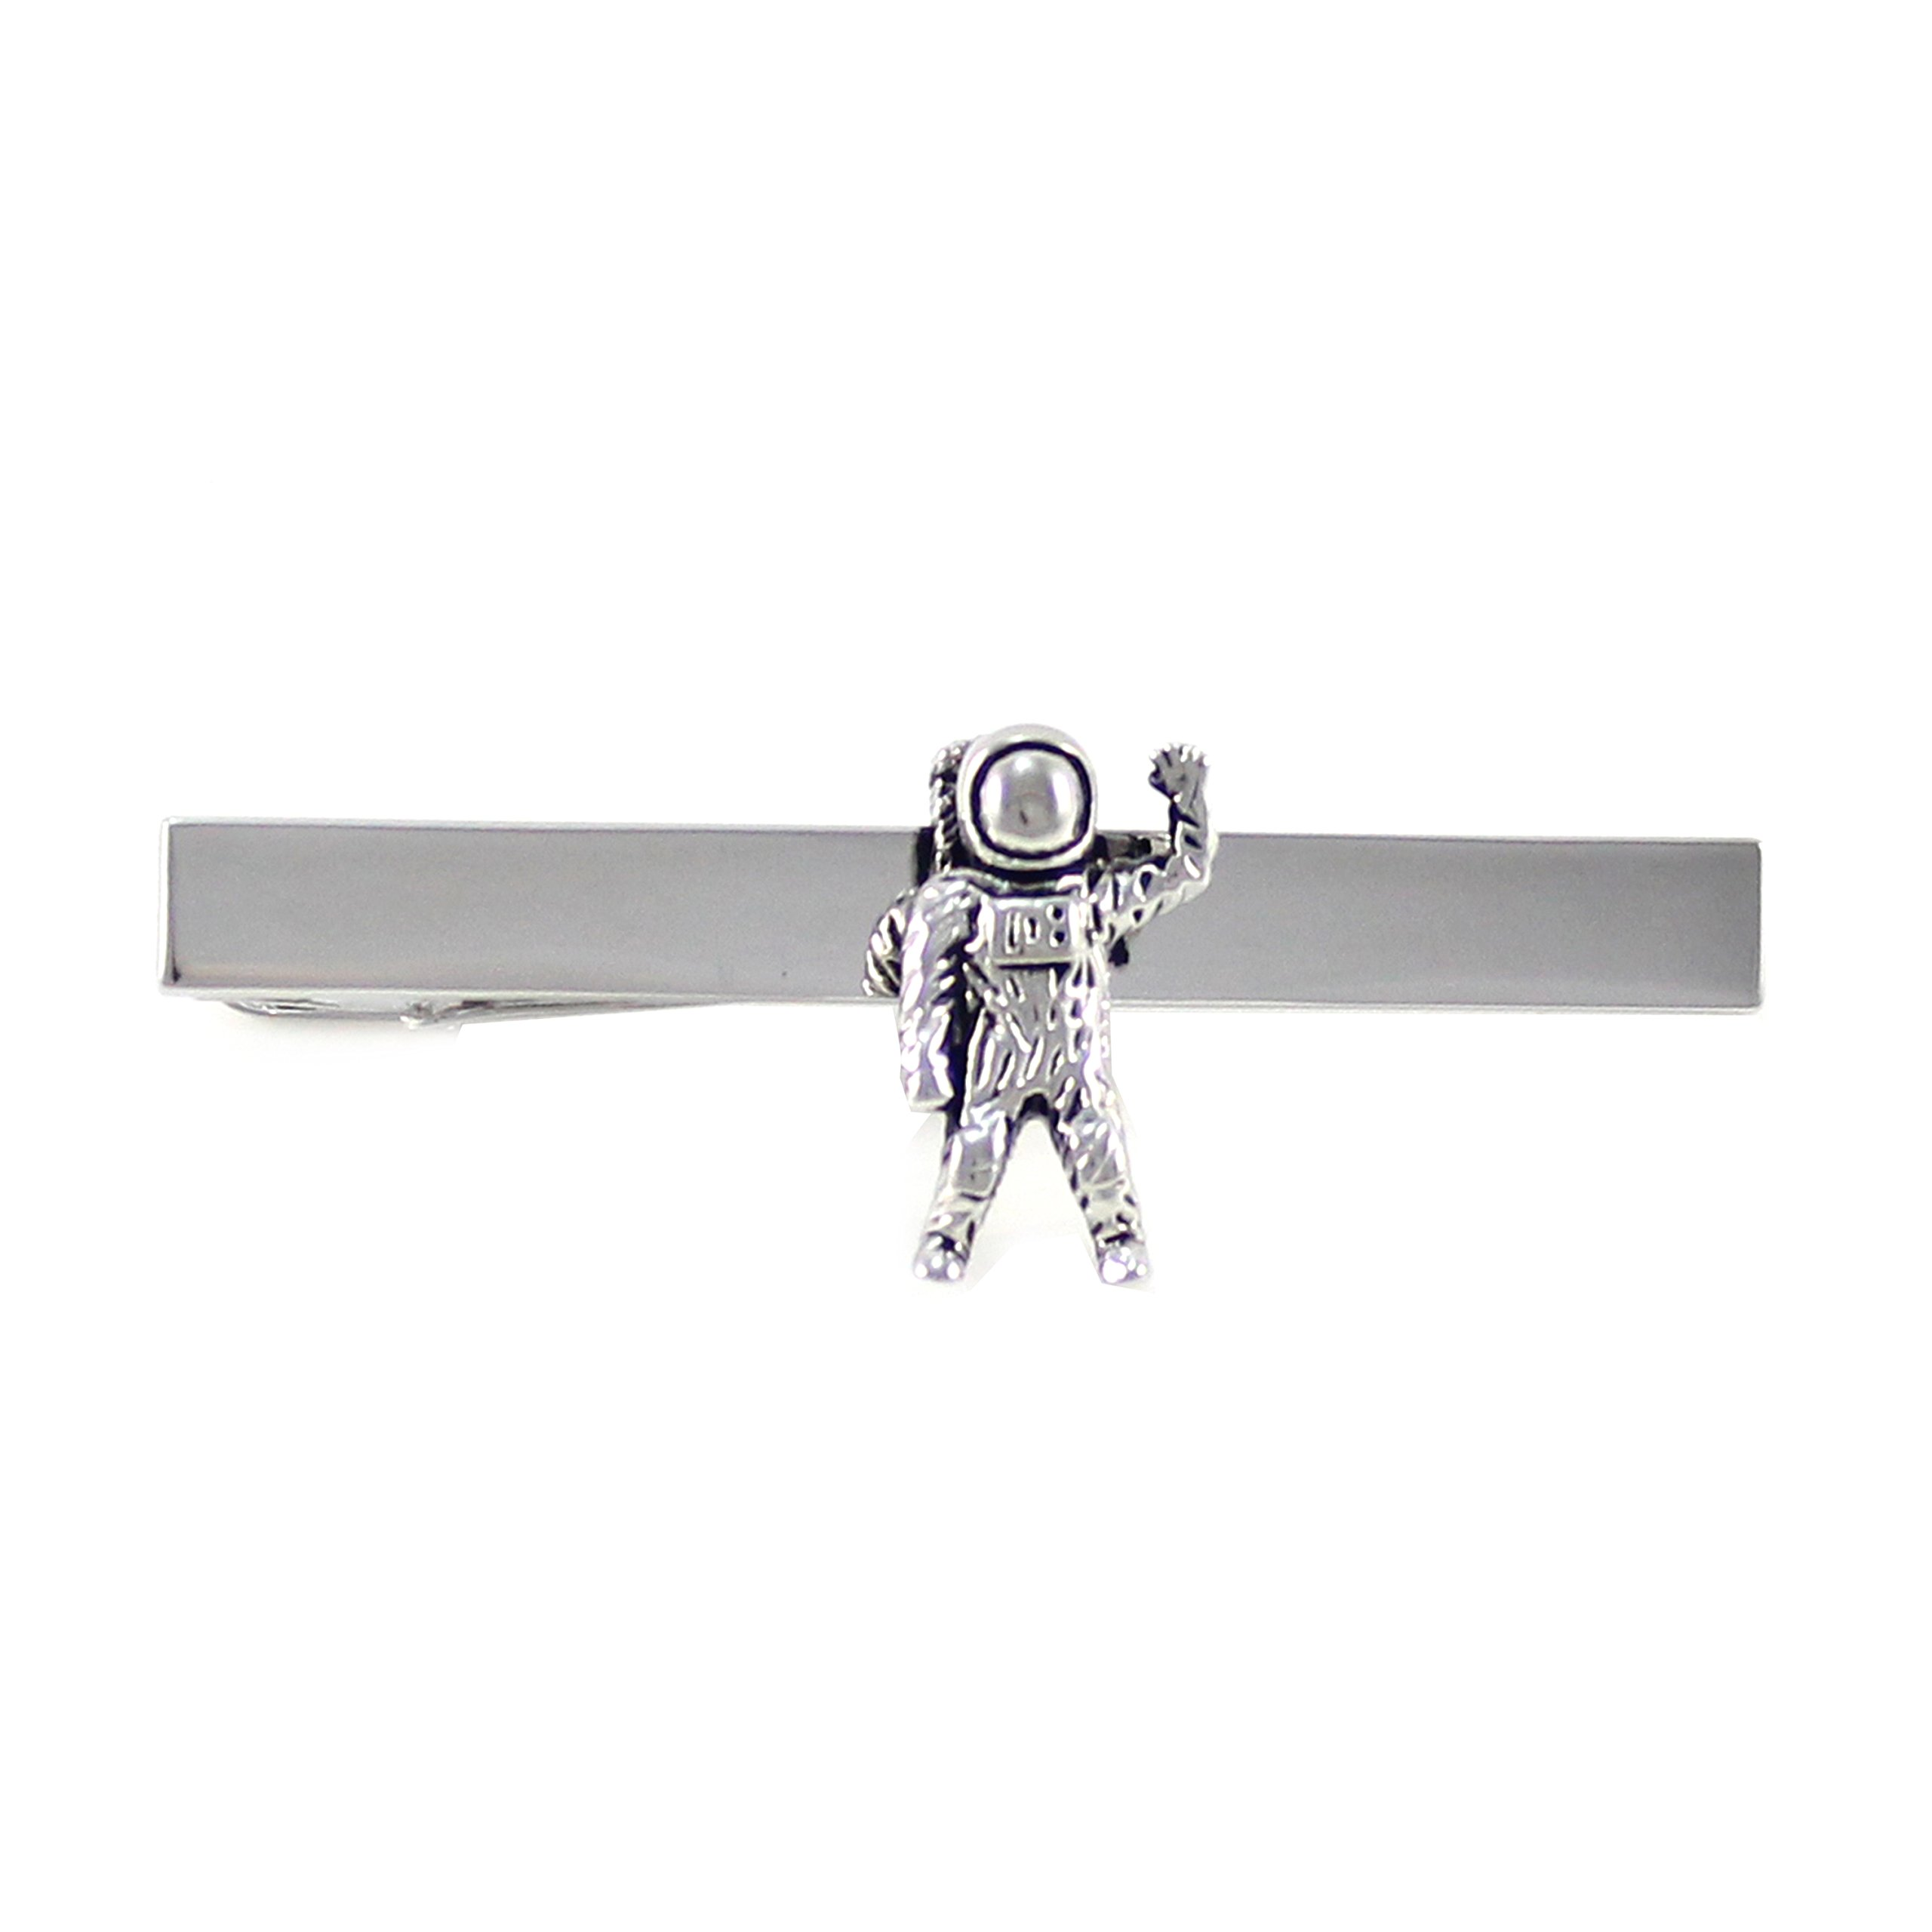 MENDEPOT Antique Silver Tone Astronaut Tie Clip With Gift Box Space Pilot Tie Clip